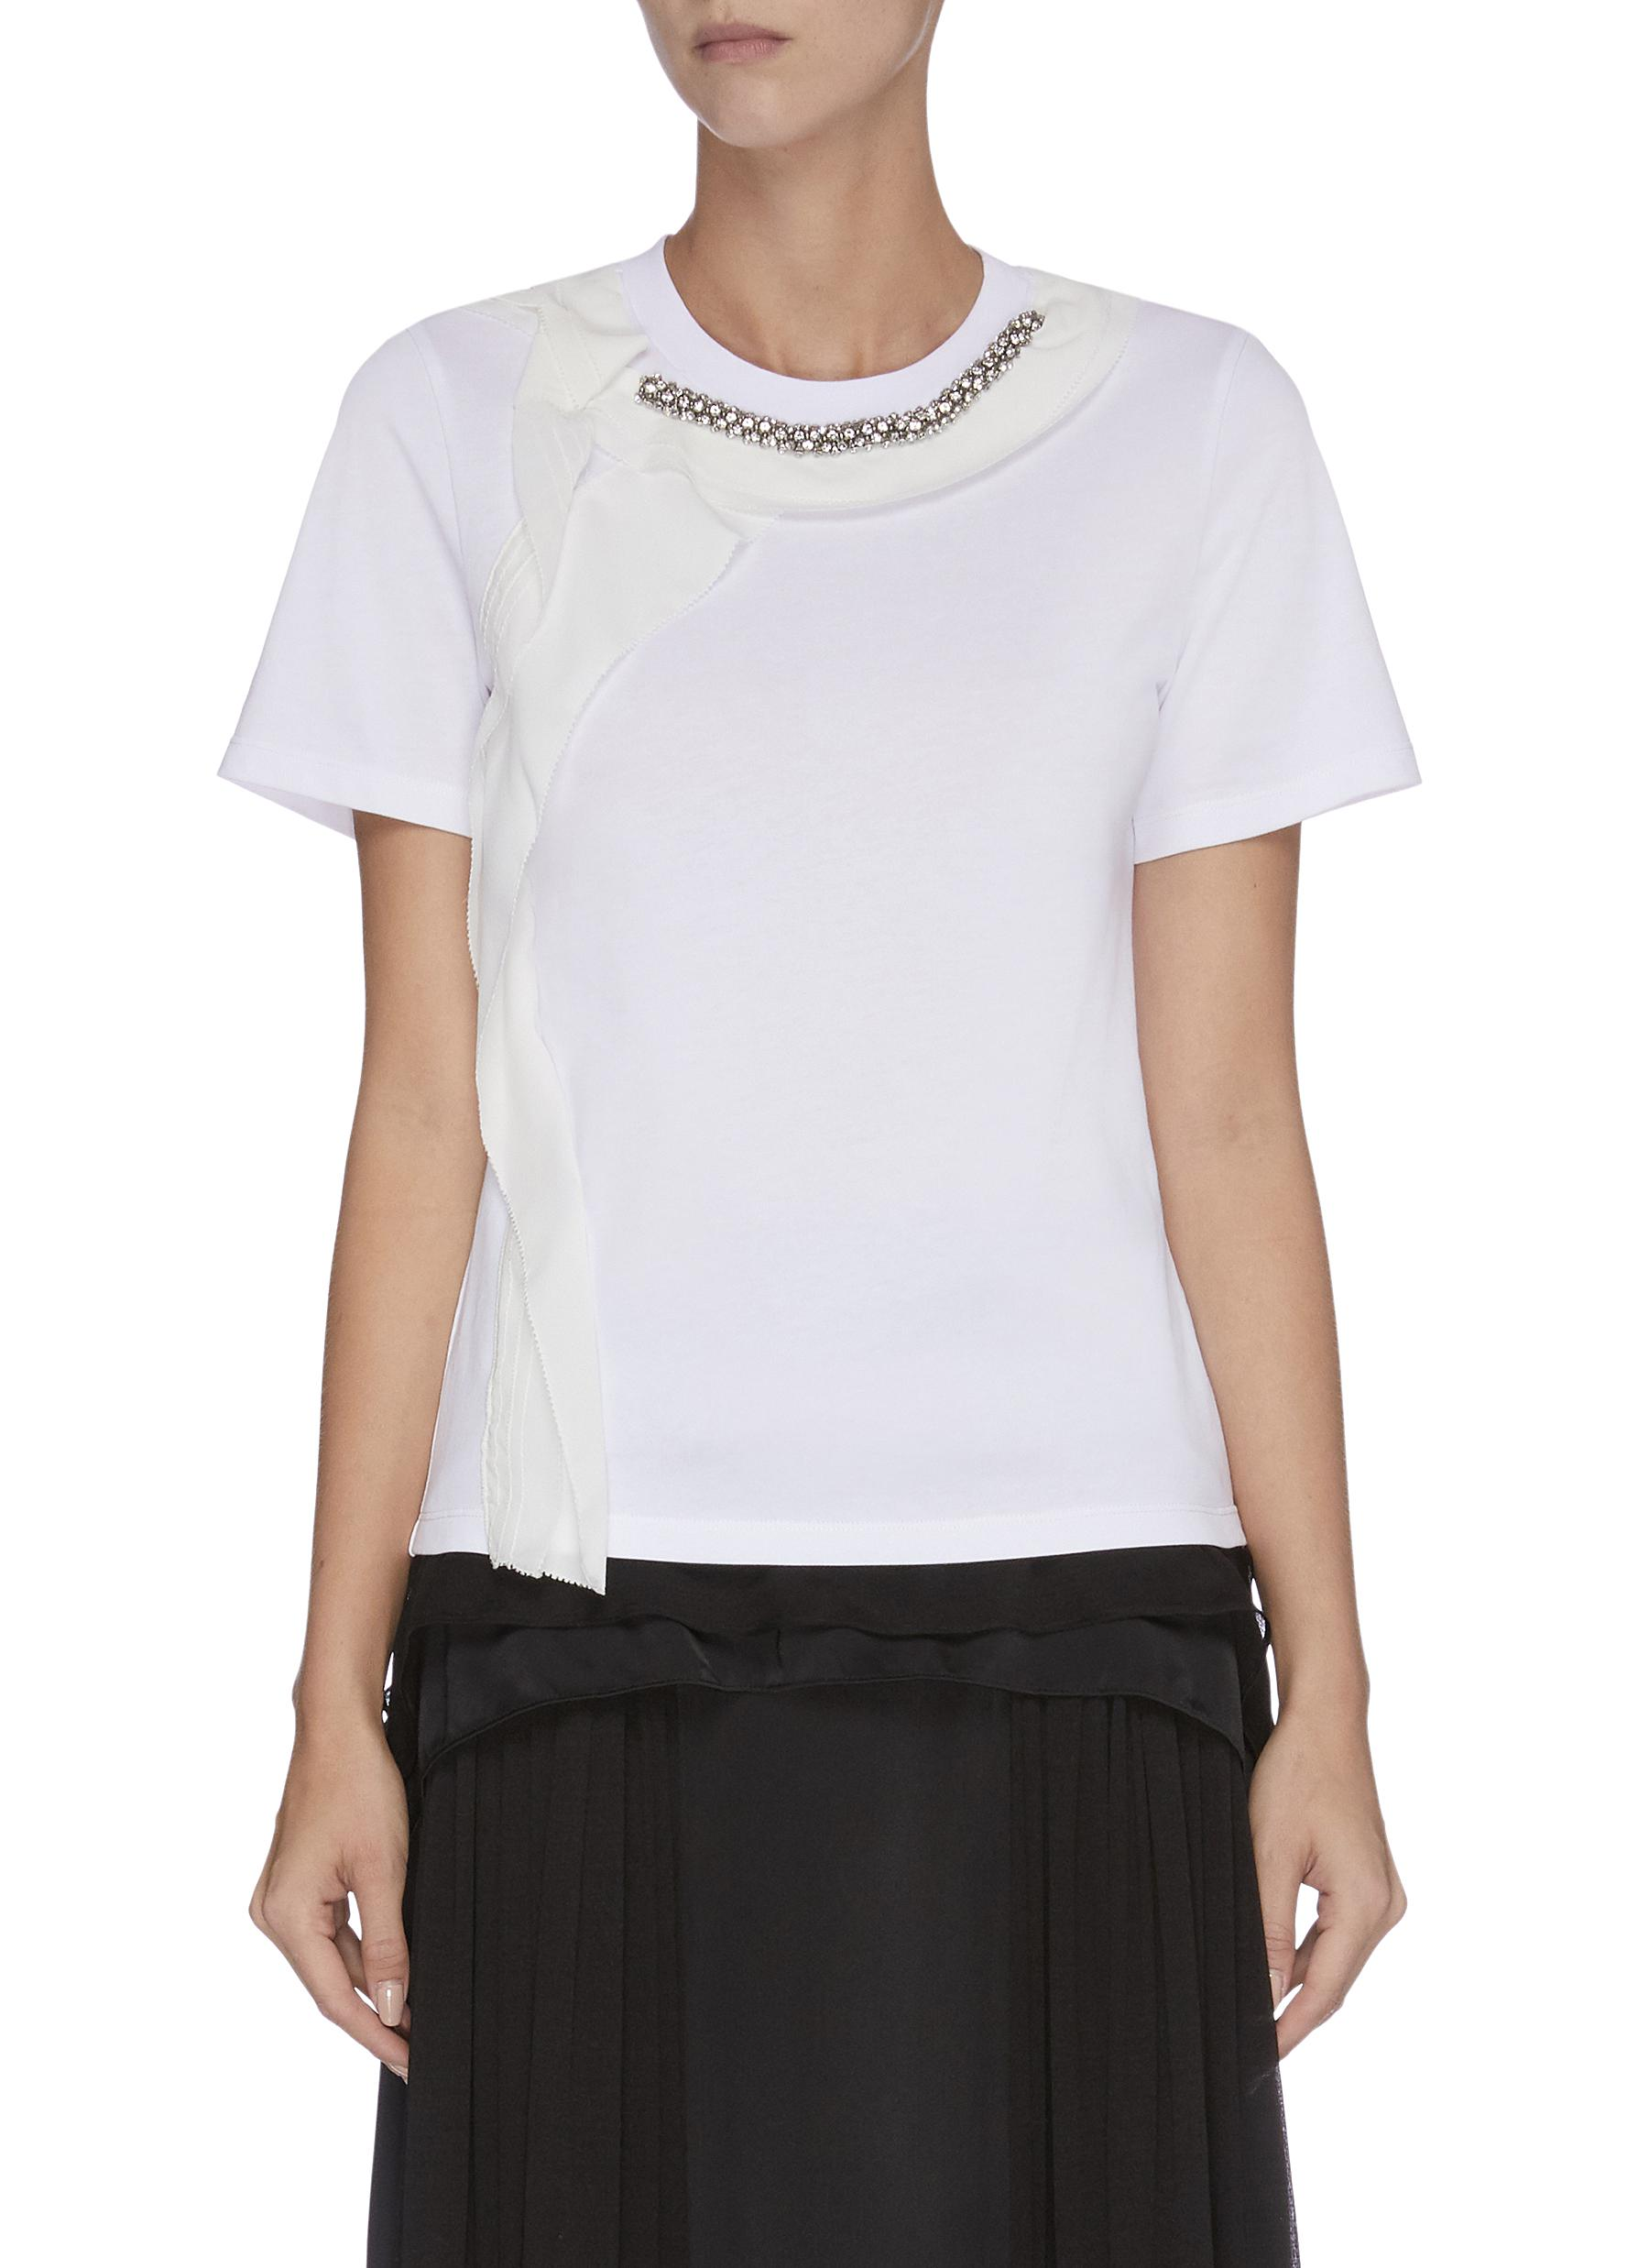 Ruffle embellished T-shirt by 3.1 Phillip Lim